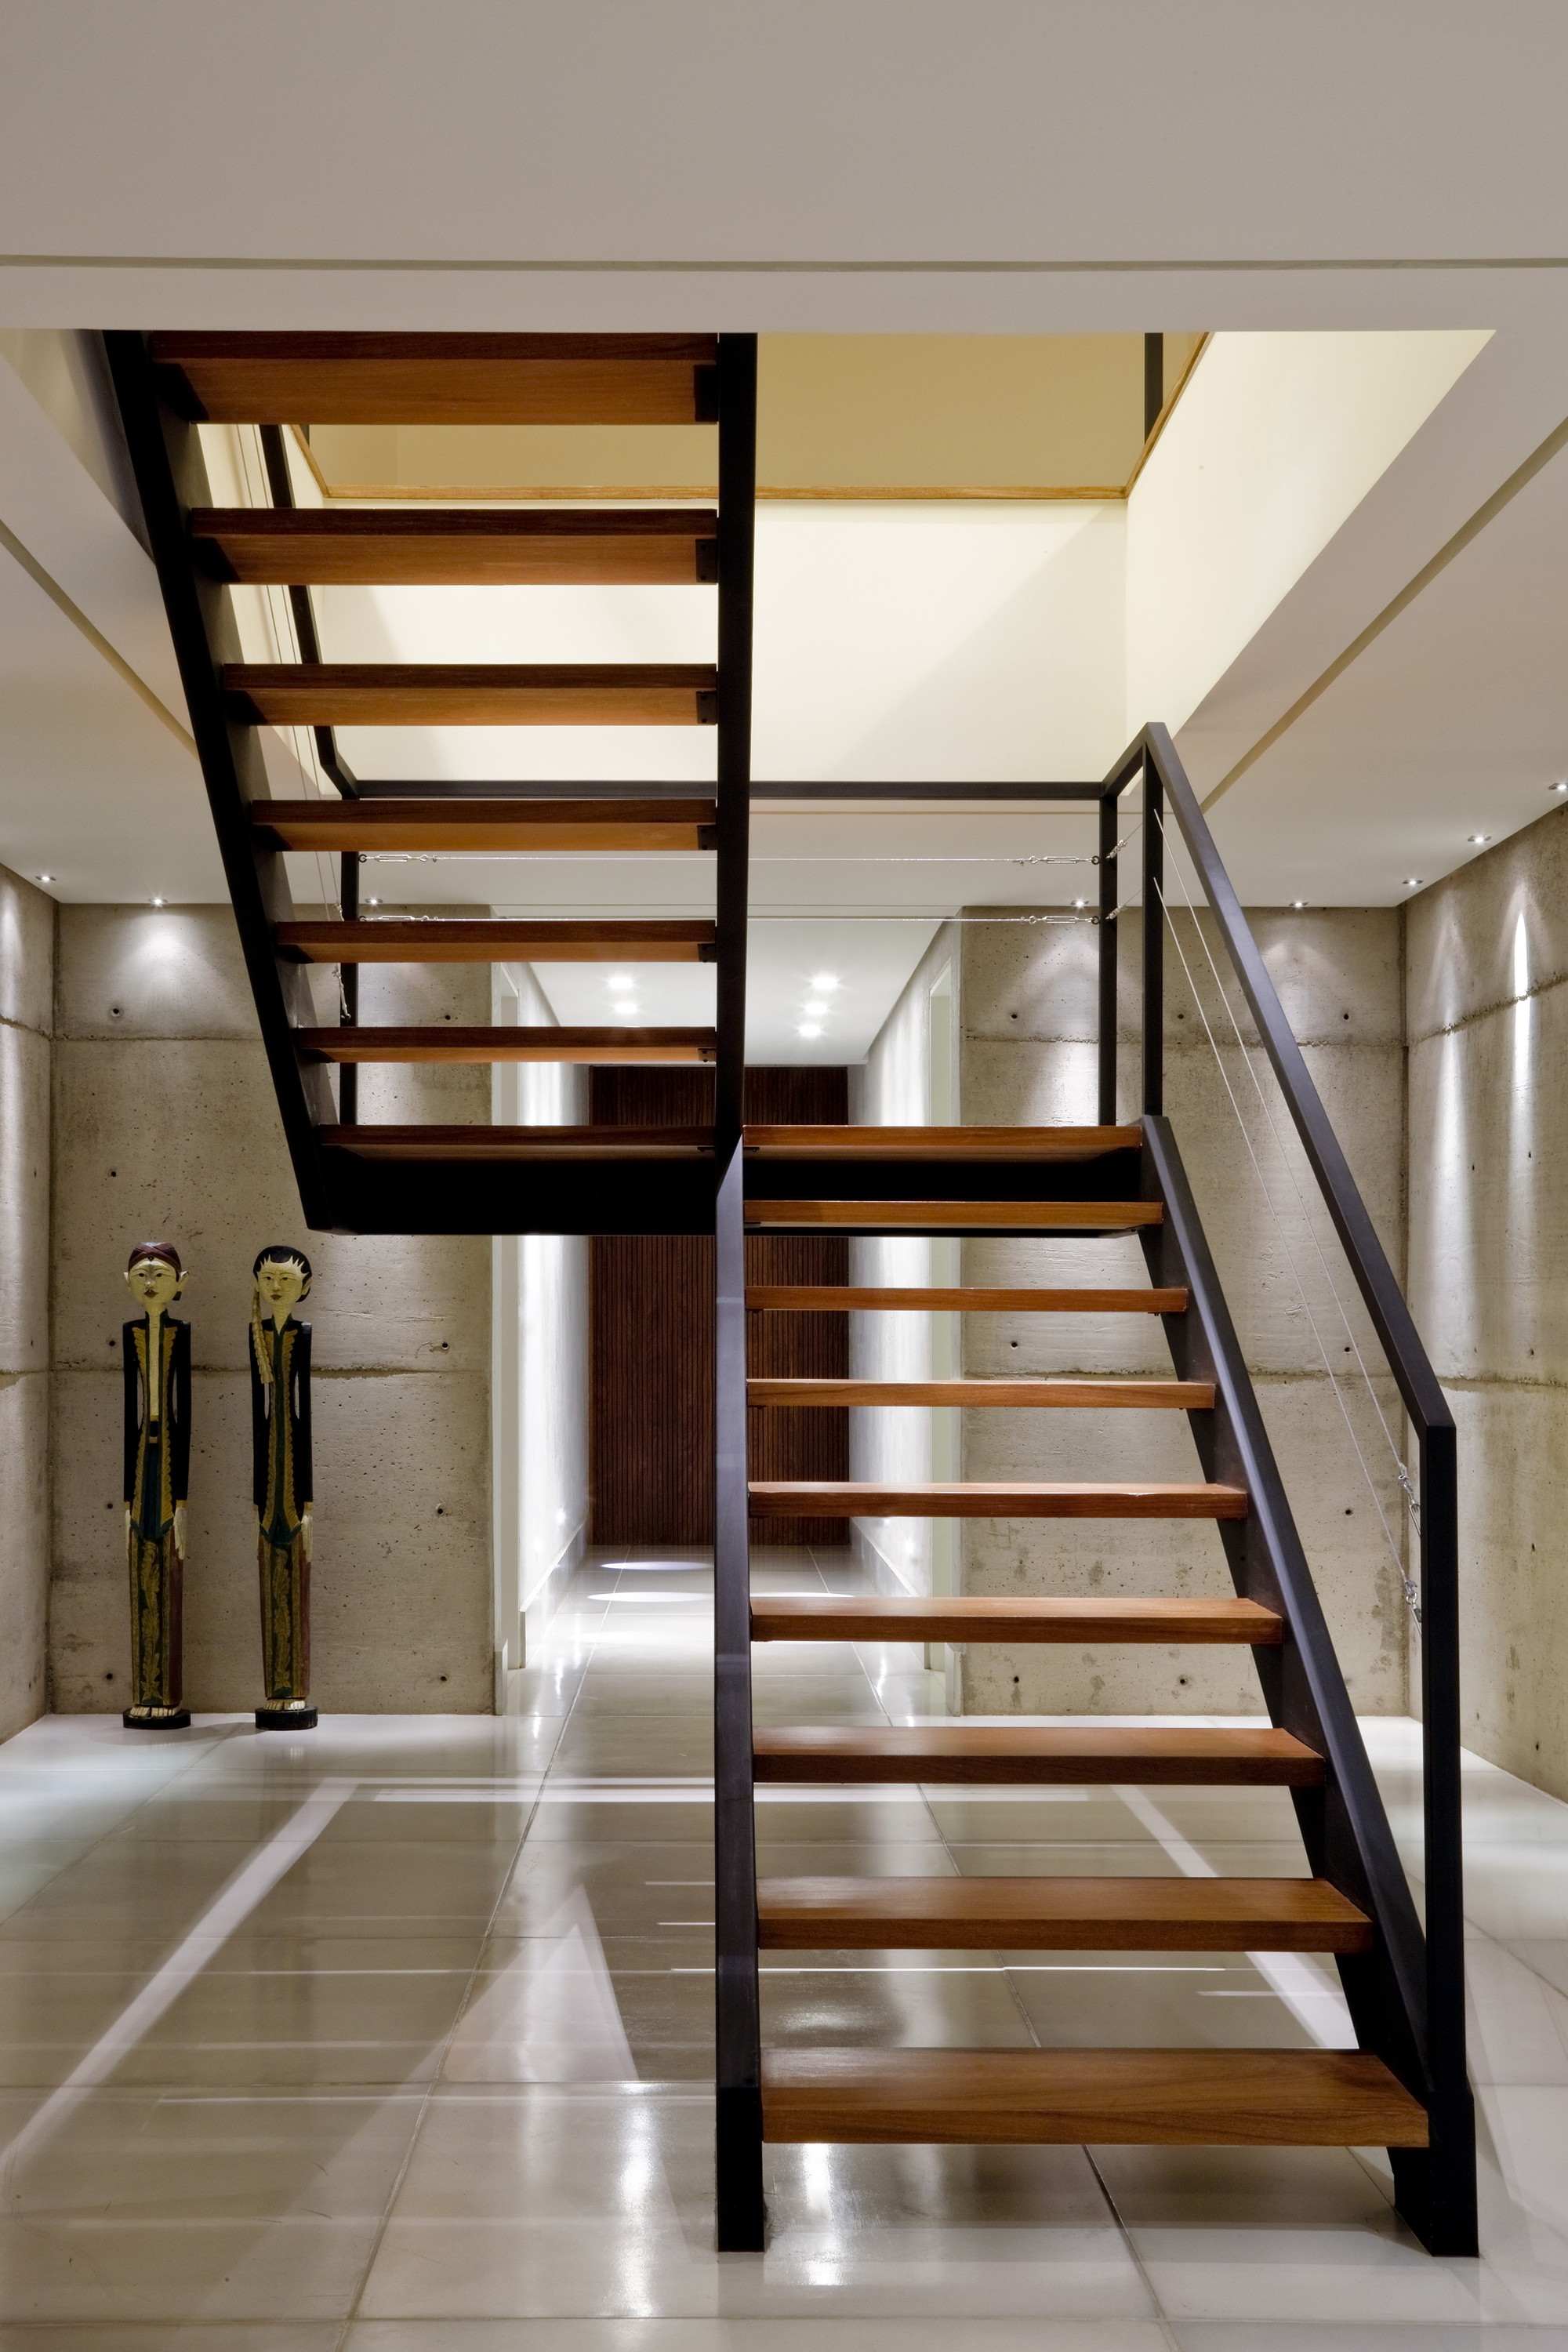 27 stair design ideas to organize your loft escalera escaleras metalicas y escaleras interiores for Escaleras metalicas homecenter